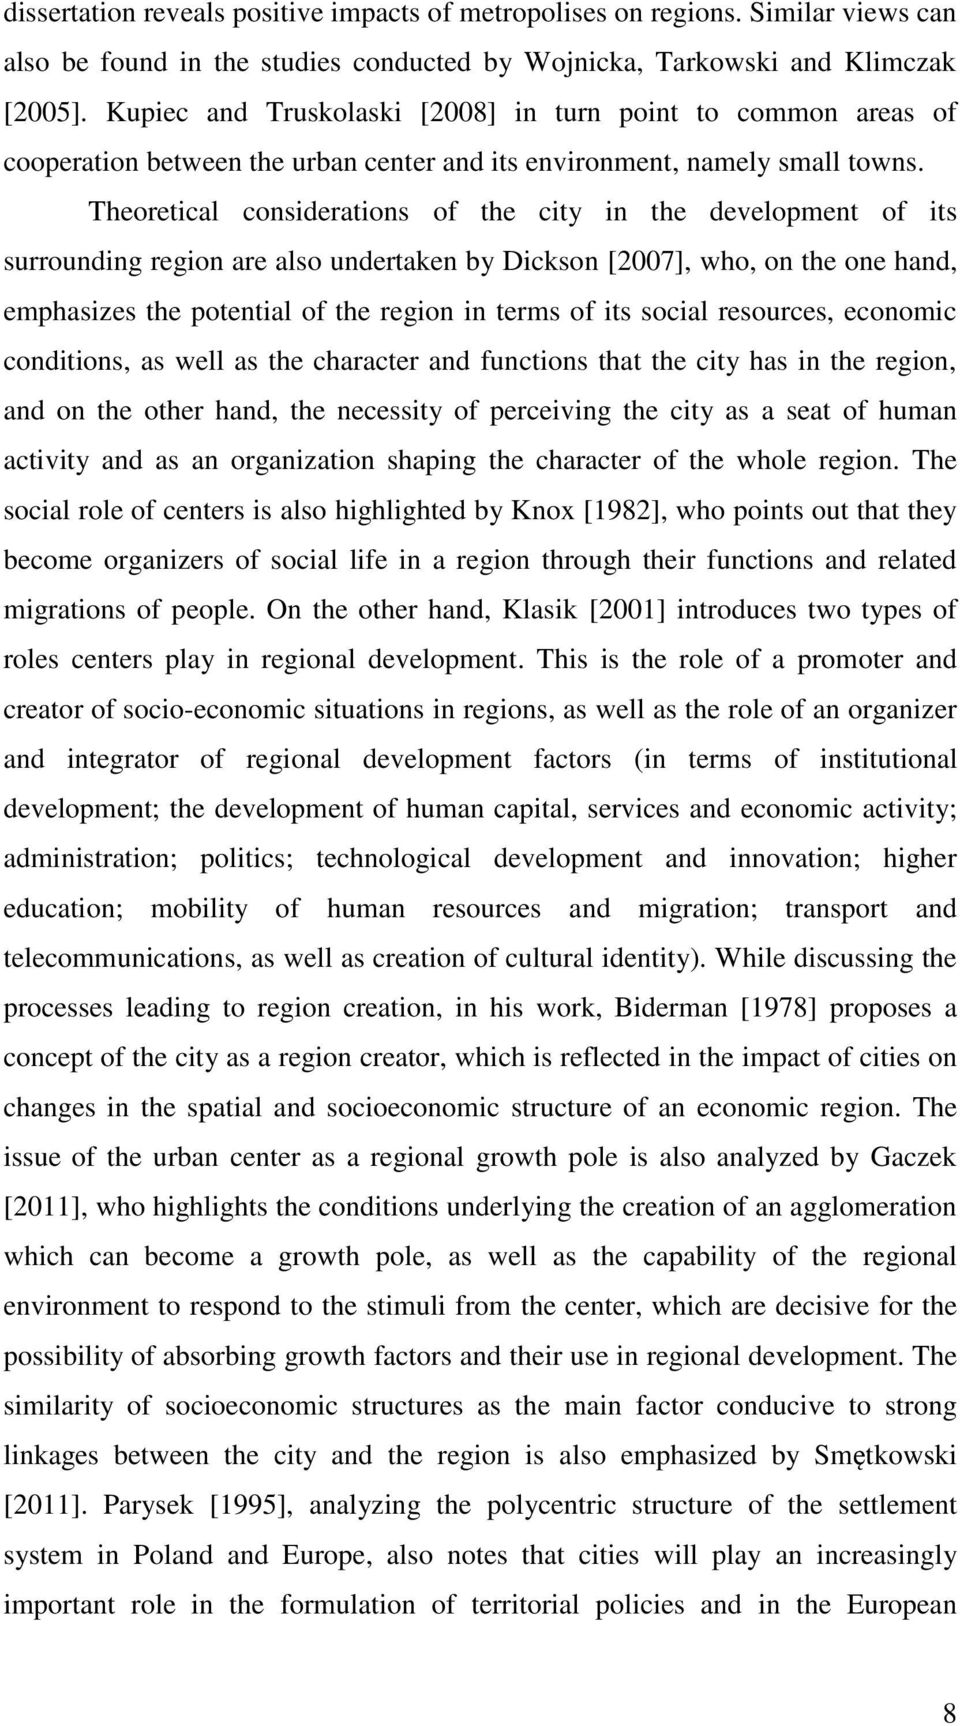 Theoretical considerations of the city in the development of its surrounding region are also undertaken by Dickson [2007], who, on the one hand, emphasizes the potential of the region in terms of its